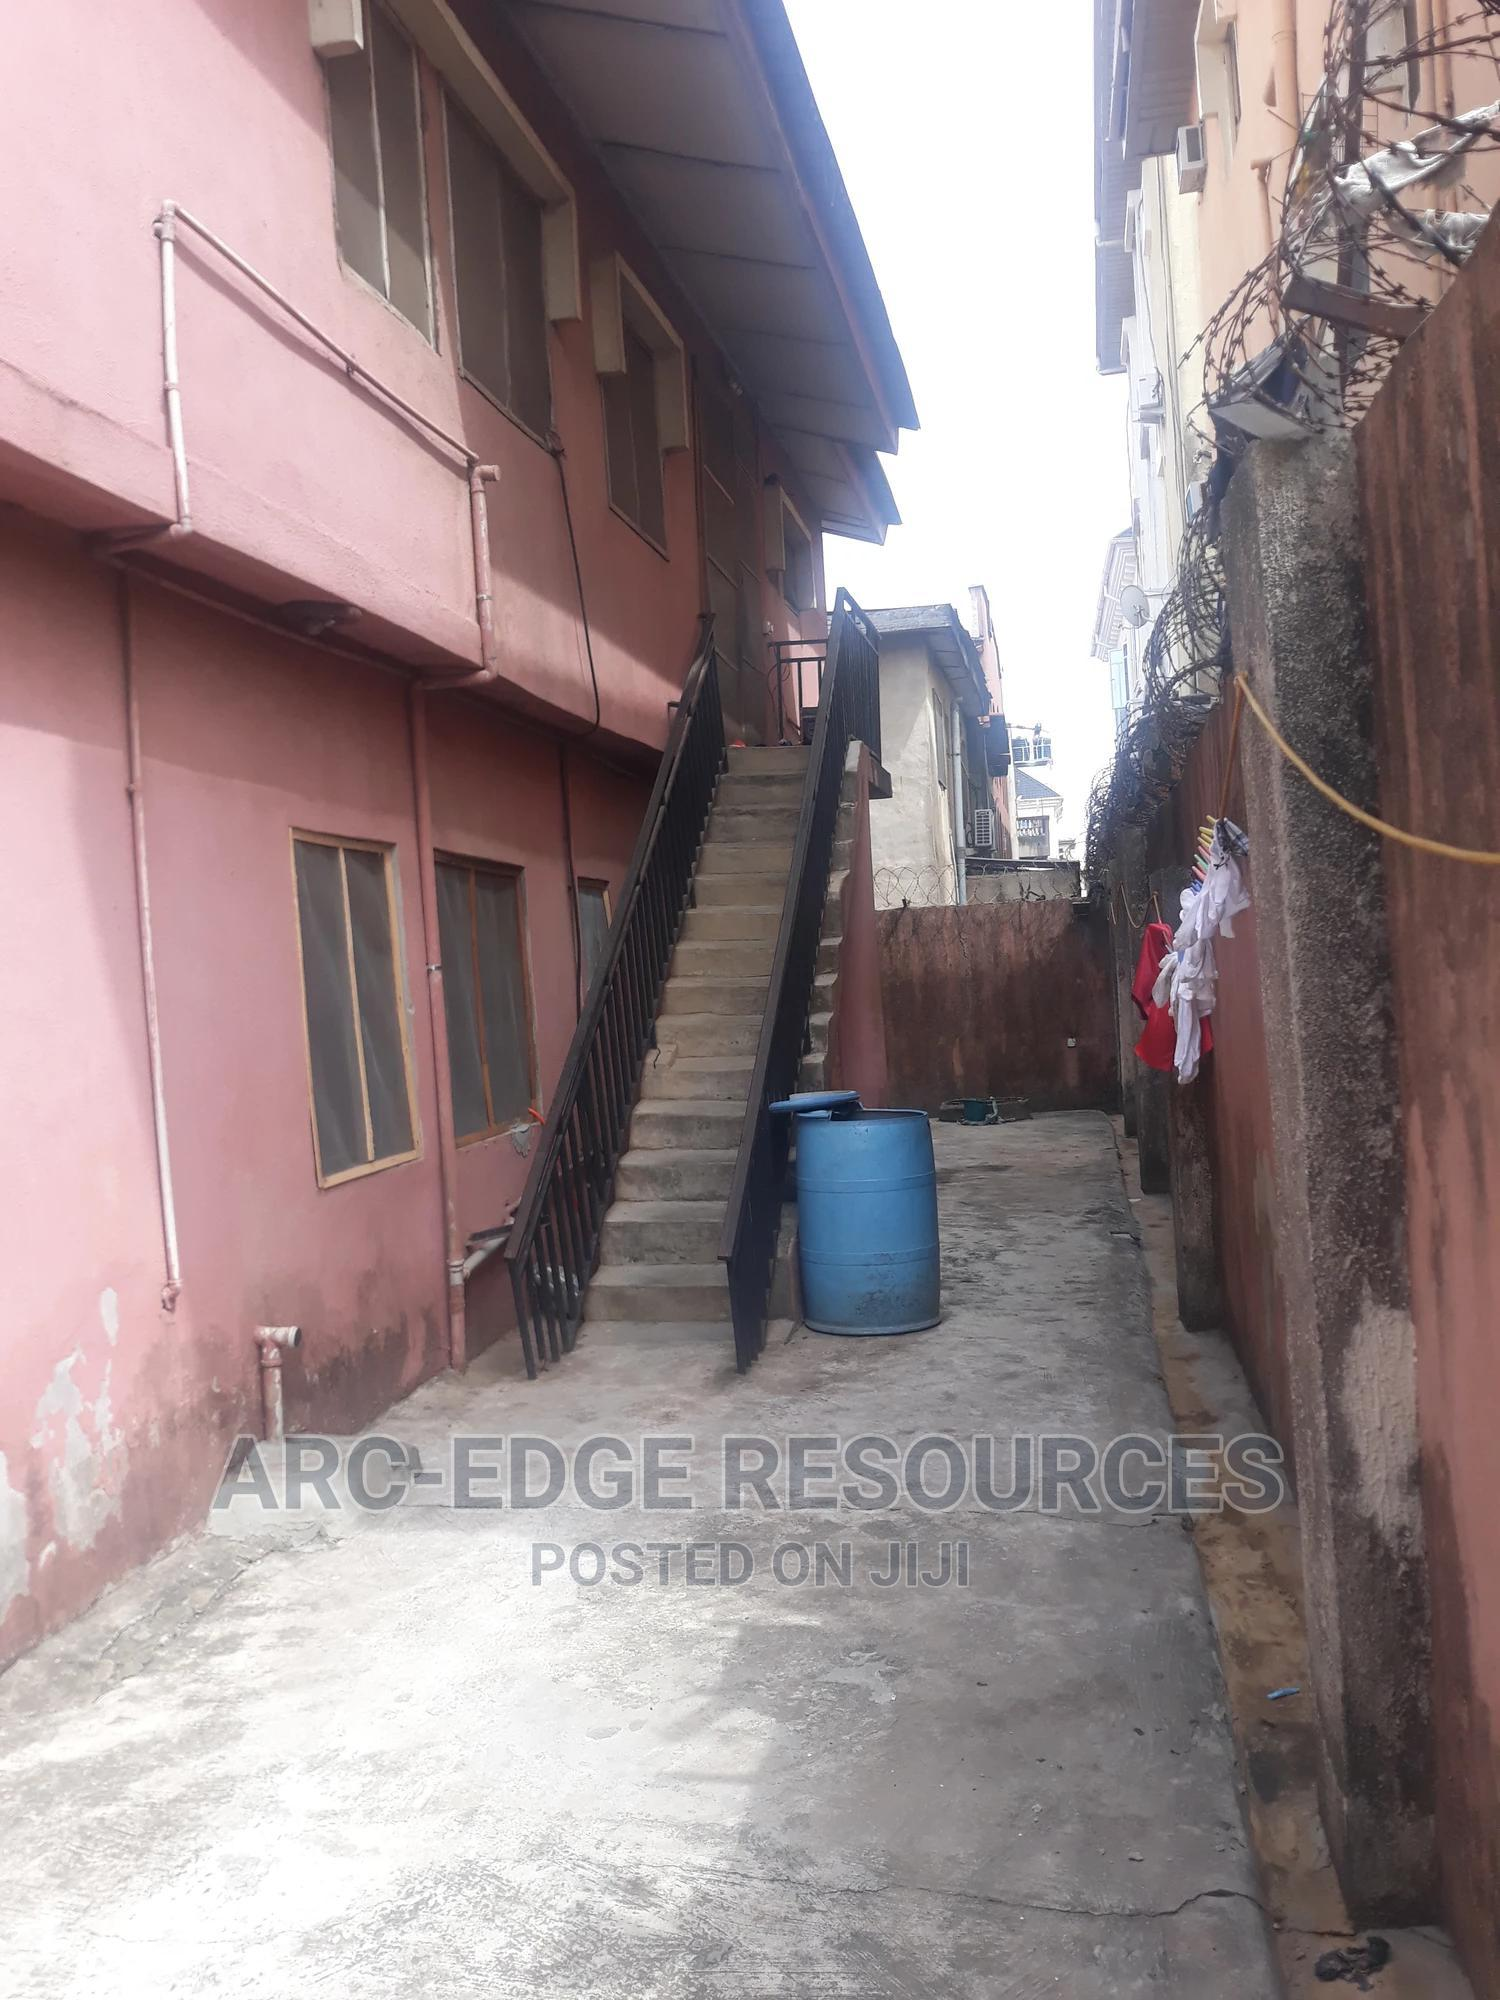 5bedroom Duplex With 3 Nos 2bedroom,A 3bedroom Flat a Shop | Houses & Apartments For Sale for sale in Ago Palace, Isolo, Nigeria